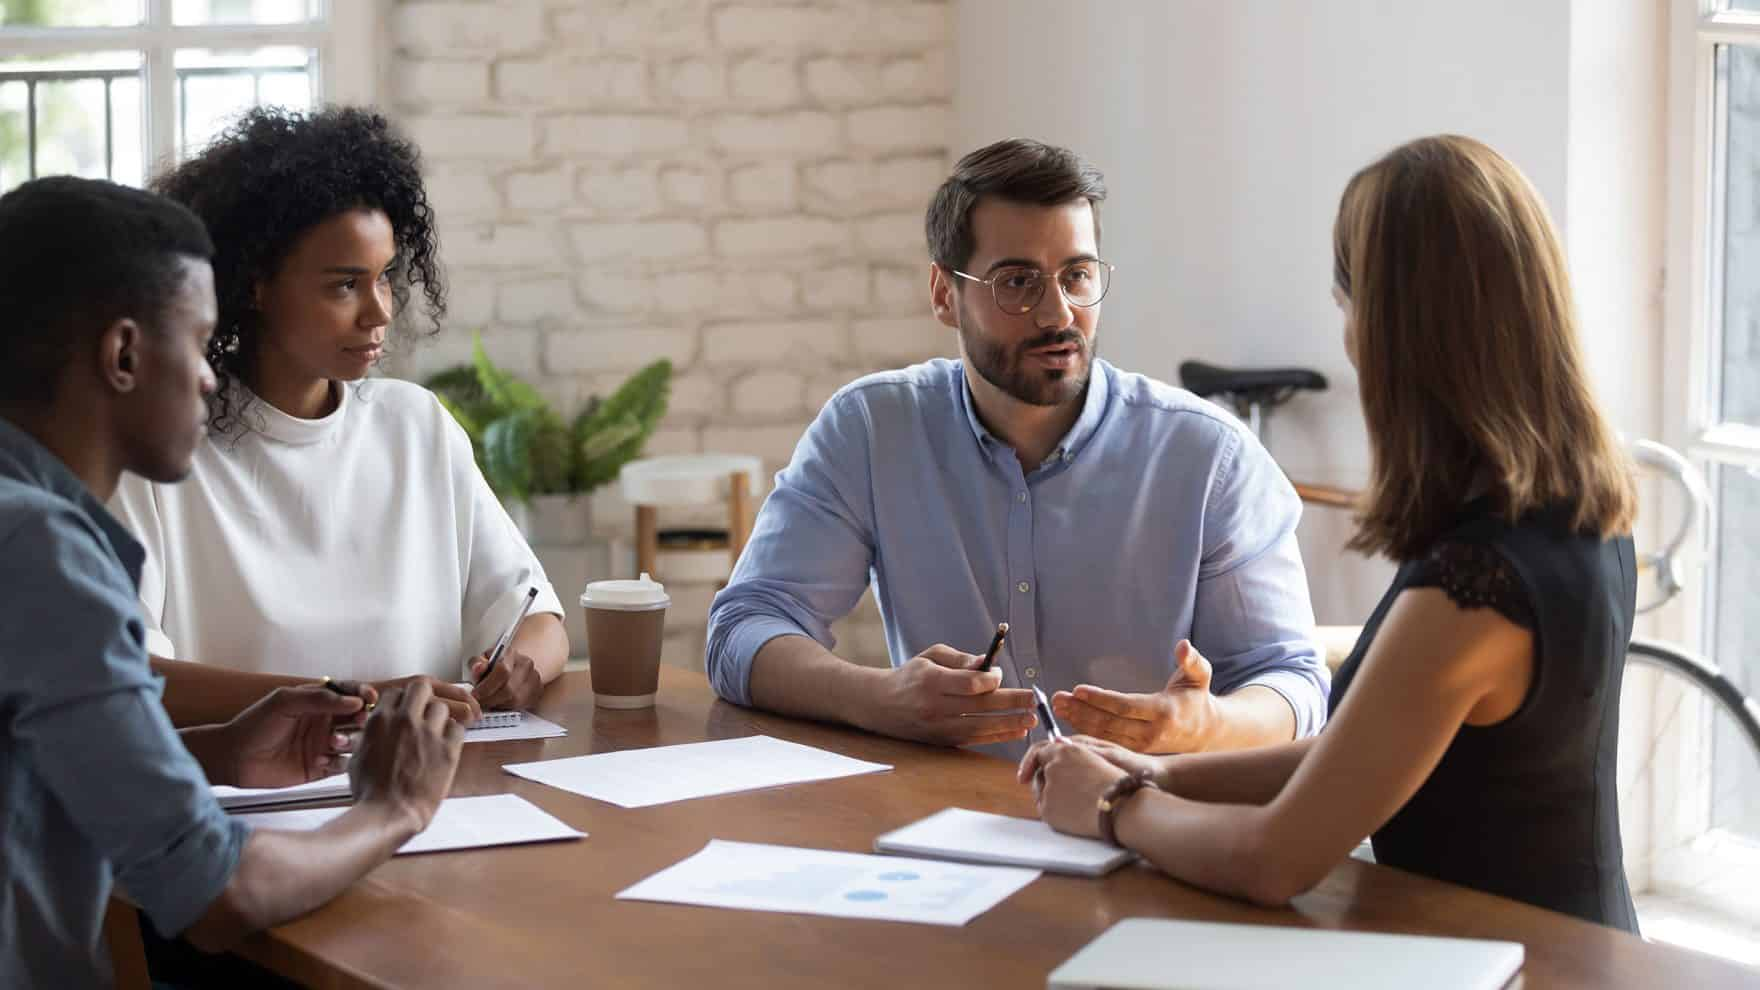 A person talking to a group: Explore leadership coaching.